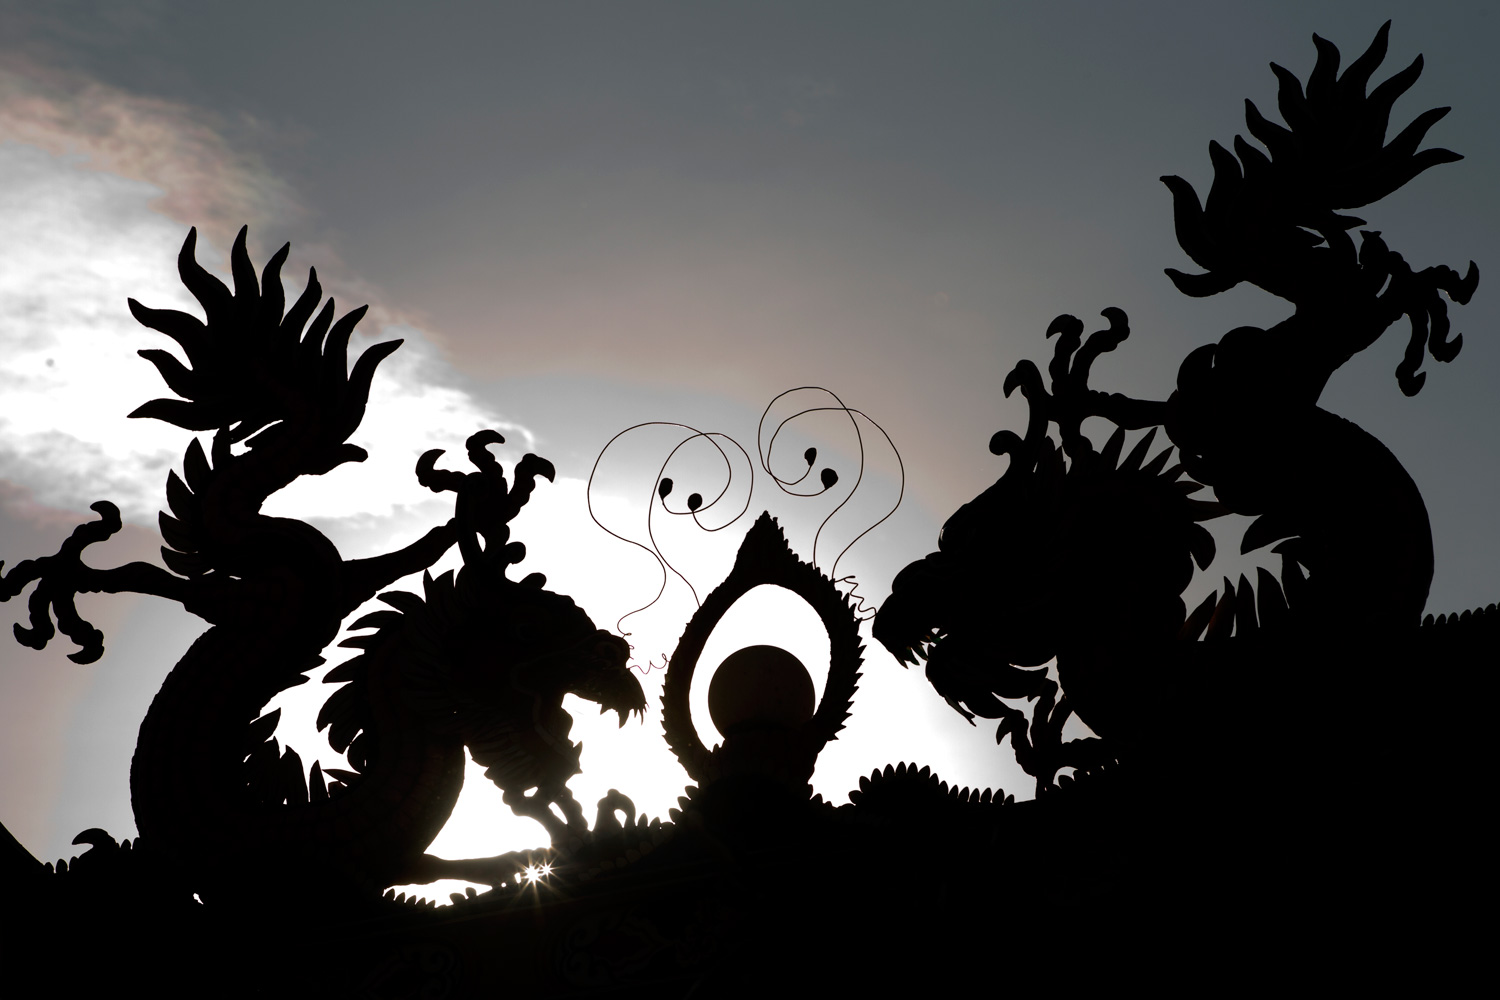 January 23, 2012. Dragons statuettes are silhouetted during sunrise at a temple in Kuala Lumpur. The Lunar New Year marks the start of the Year of the Dragon.